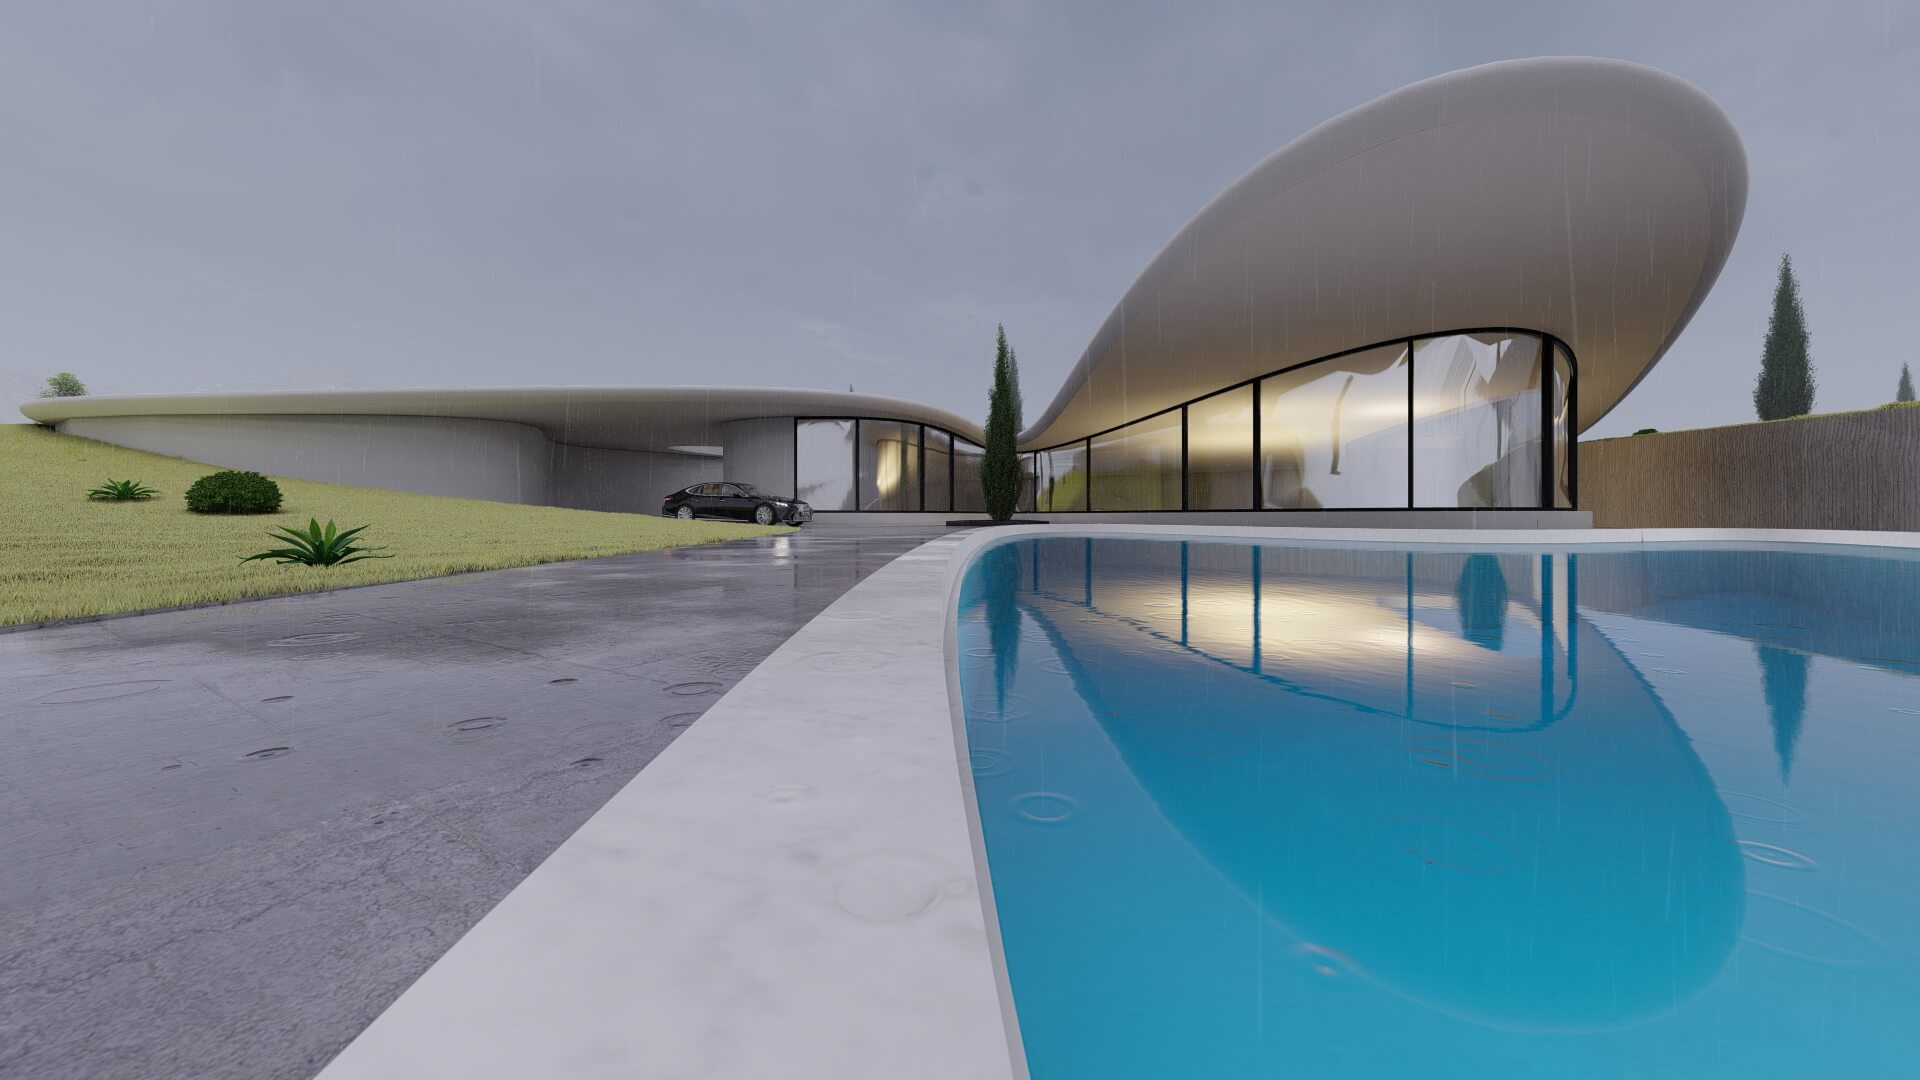 organic shaped house surrounded with green landscape